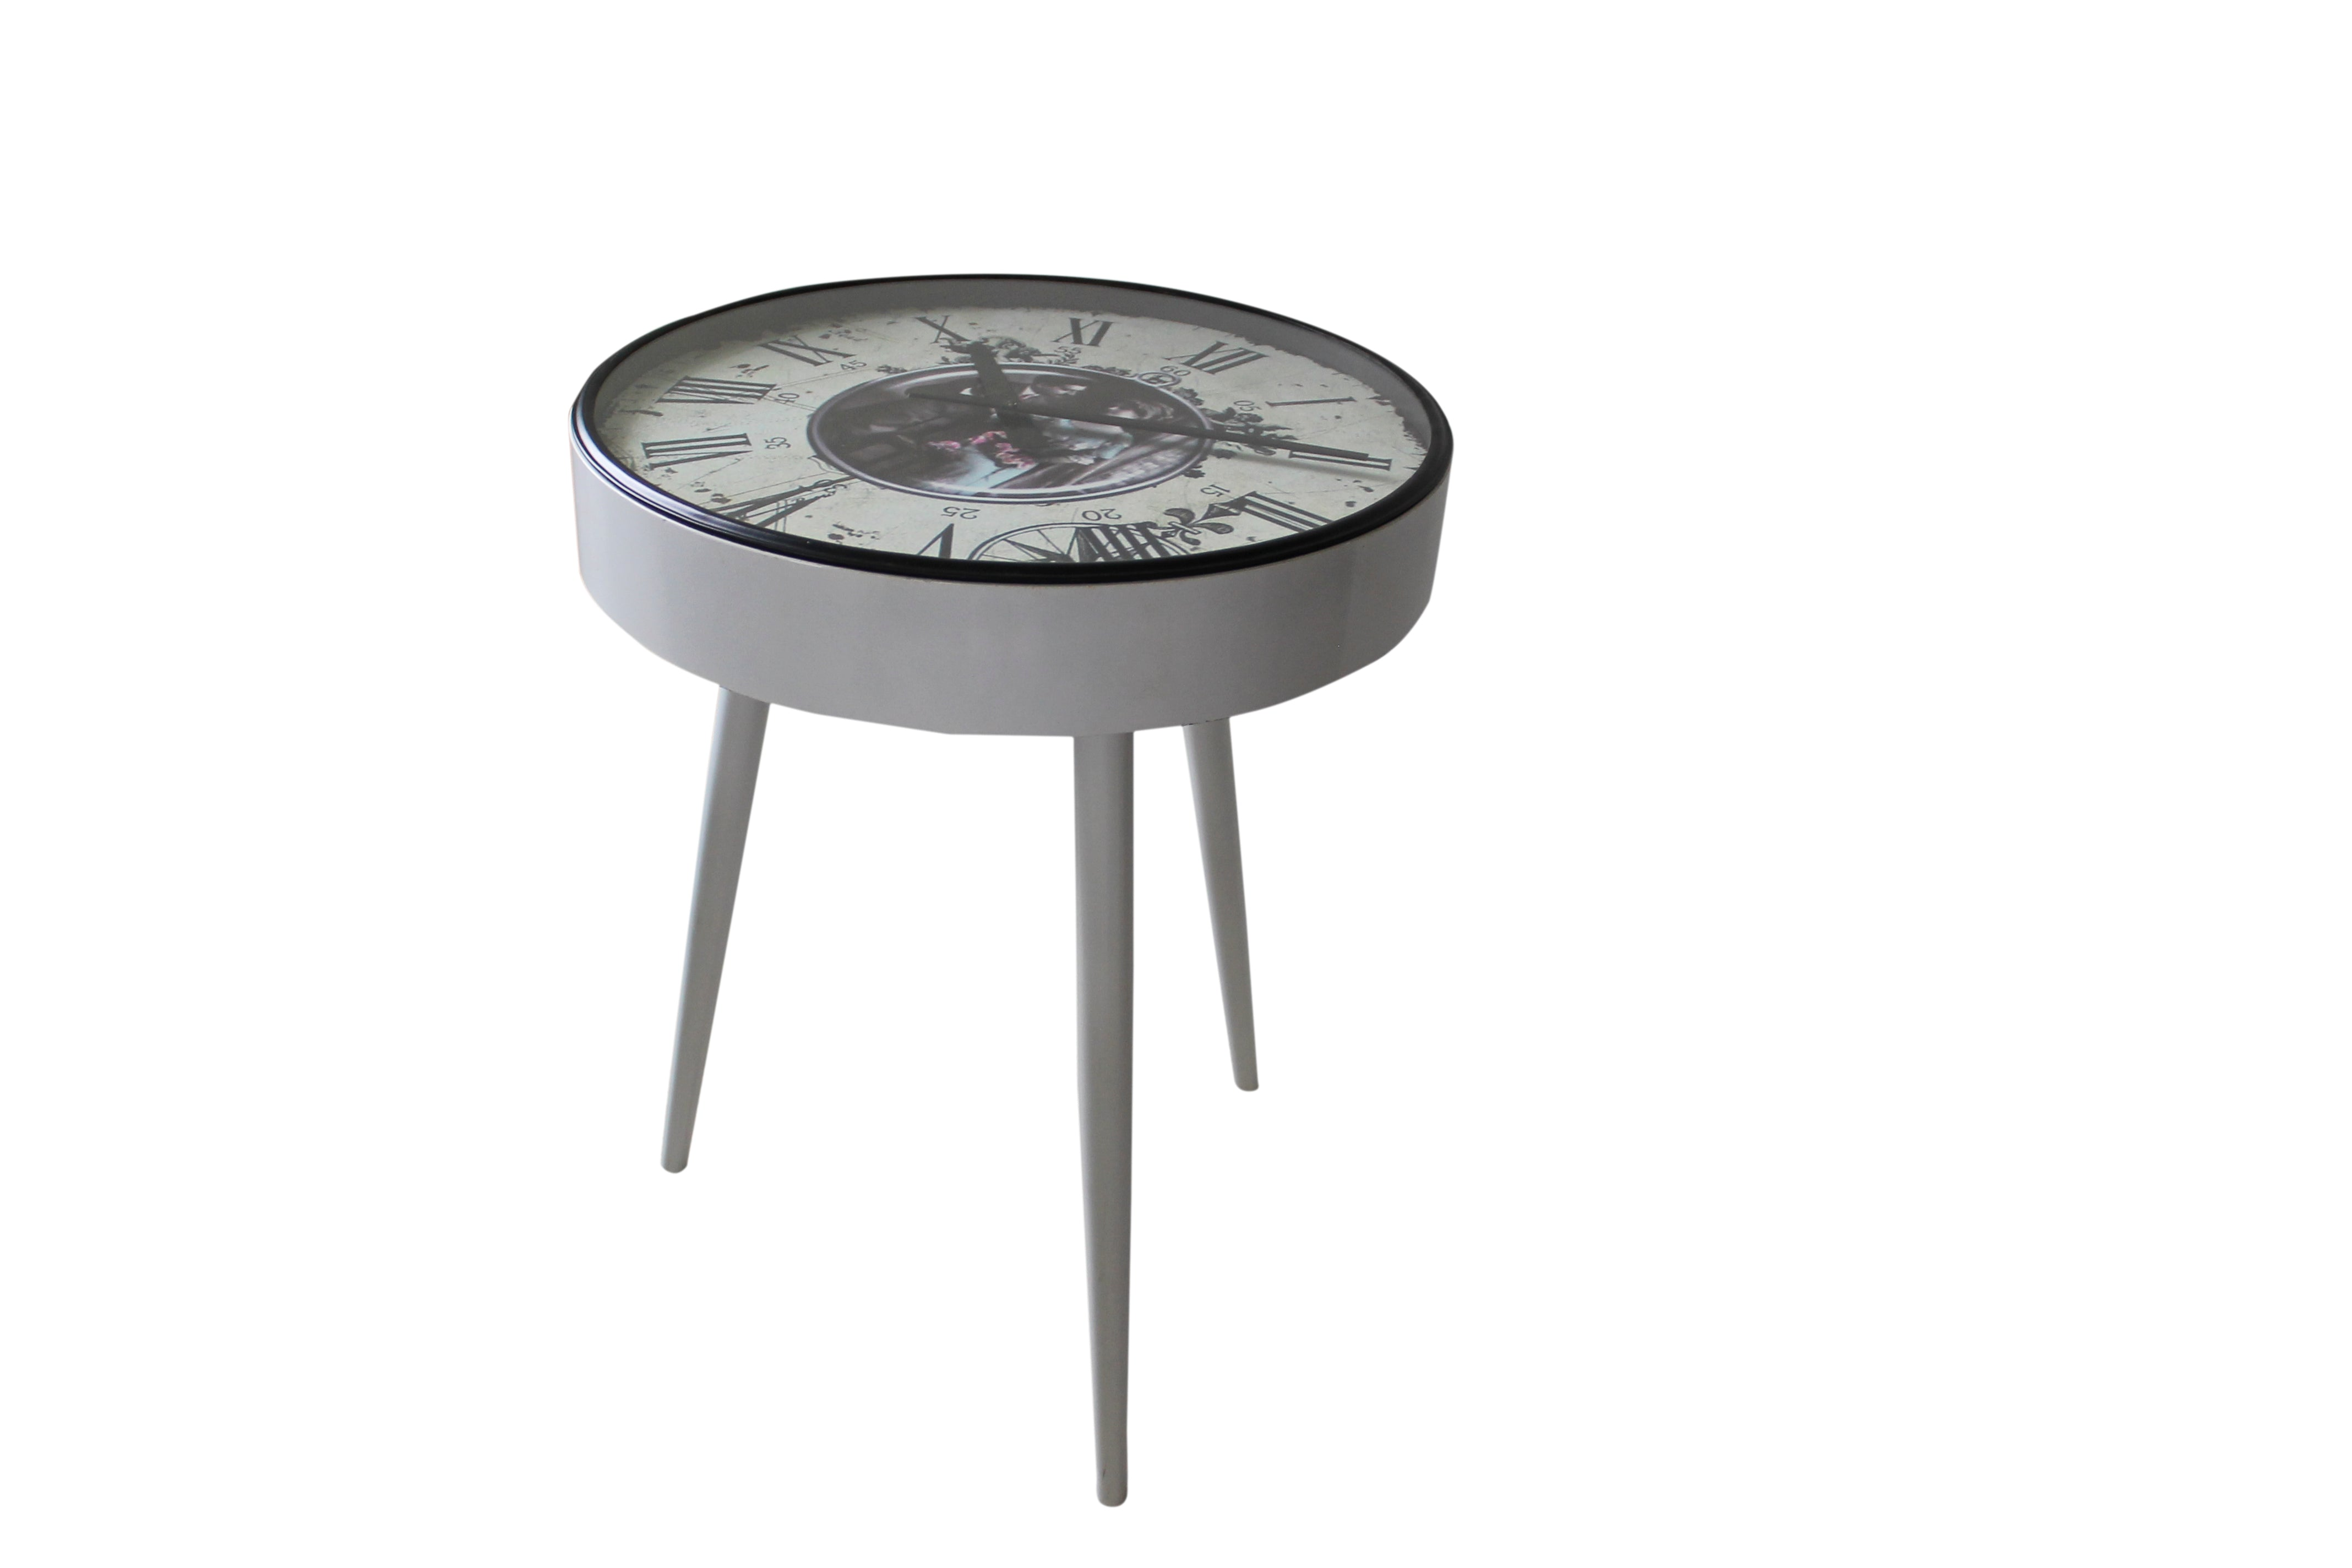 Iron Side Table Clock $419.99